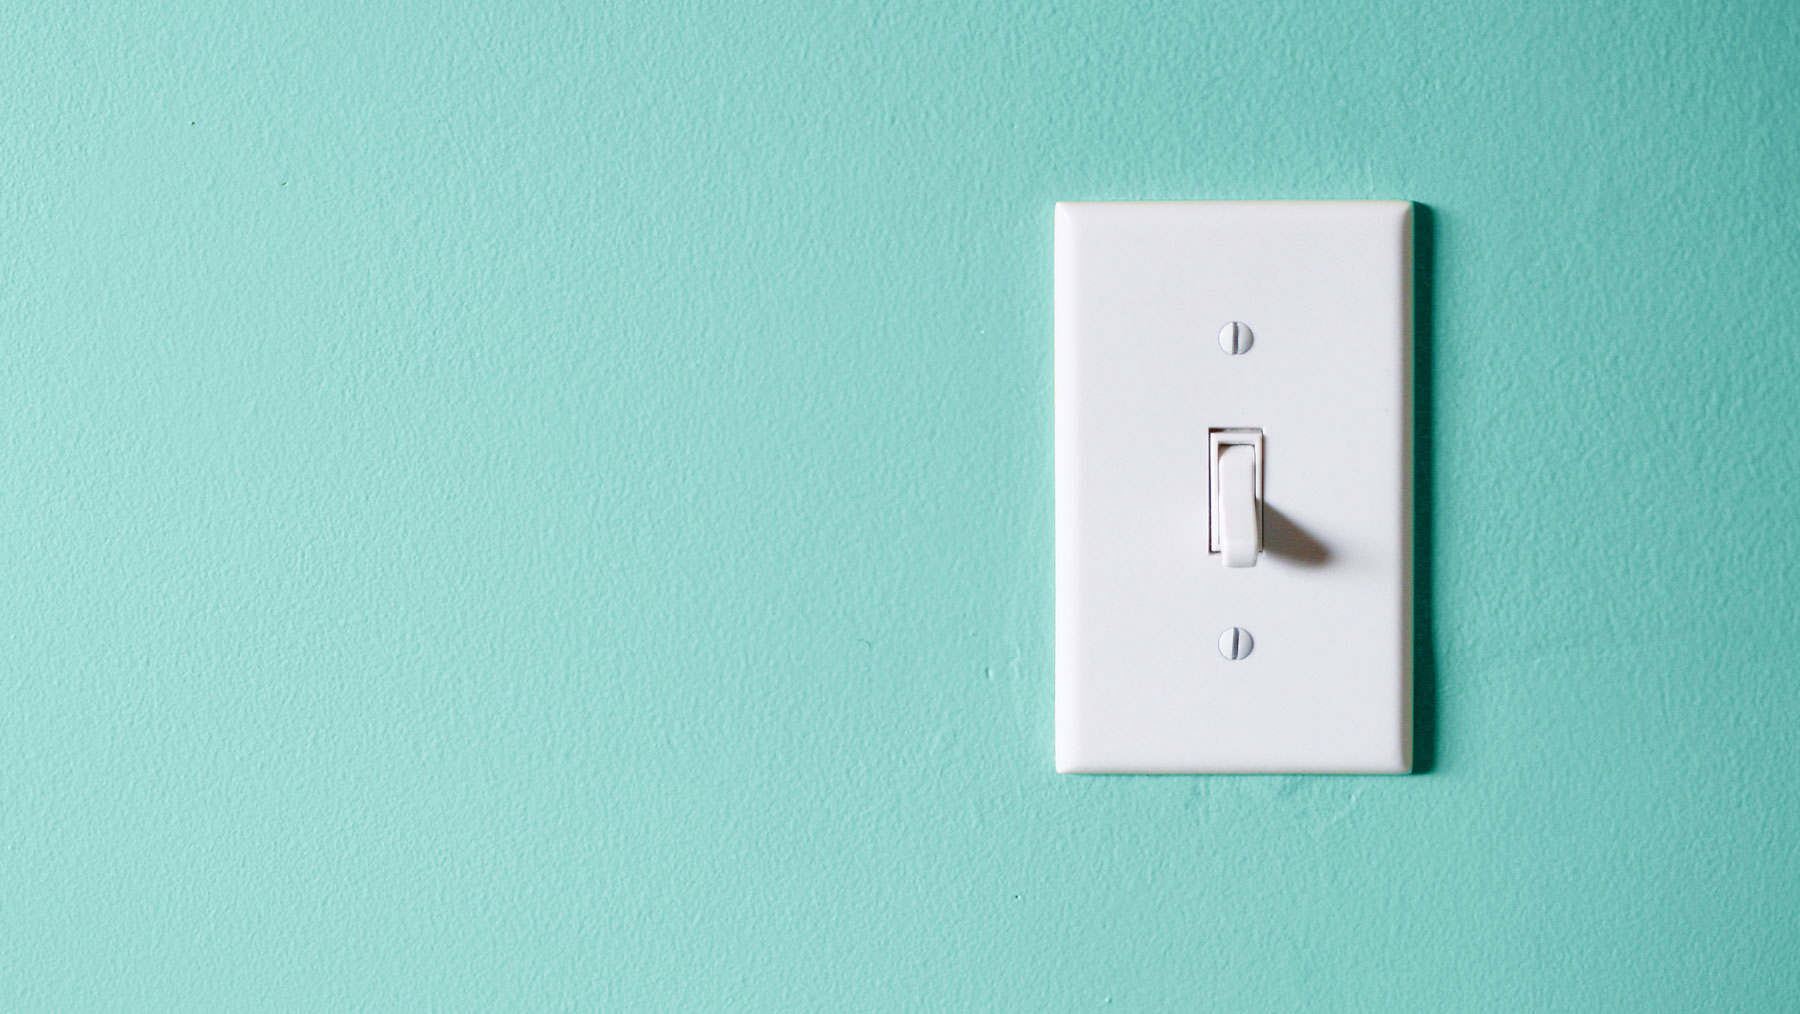 Lower utility bills and costs during quarantine - tips (light switch)